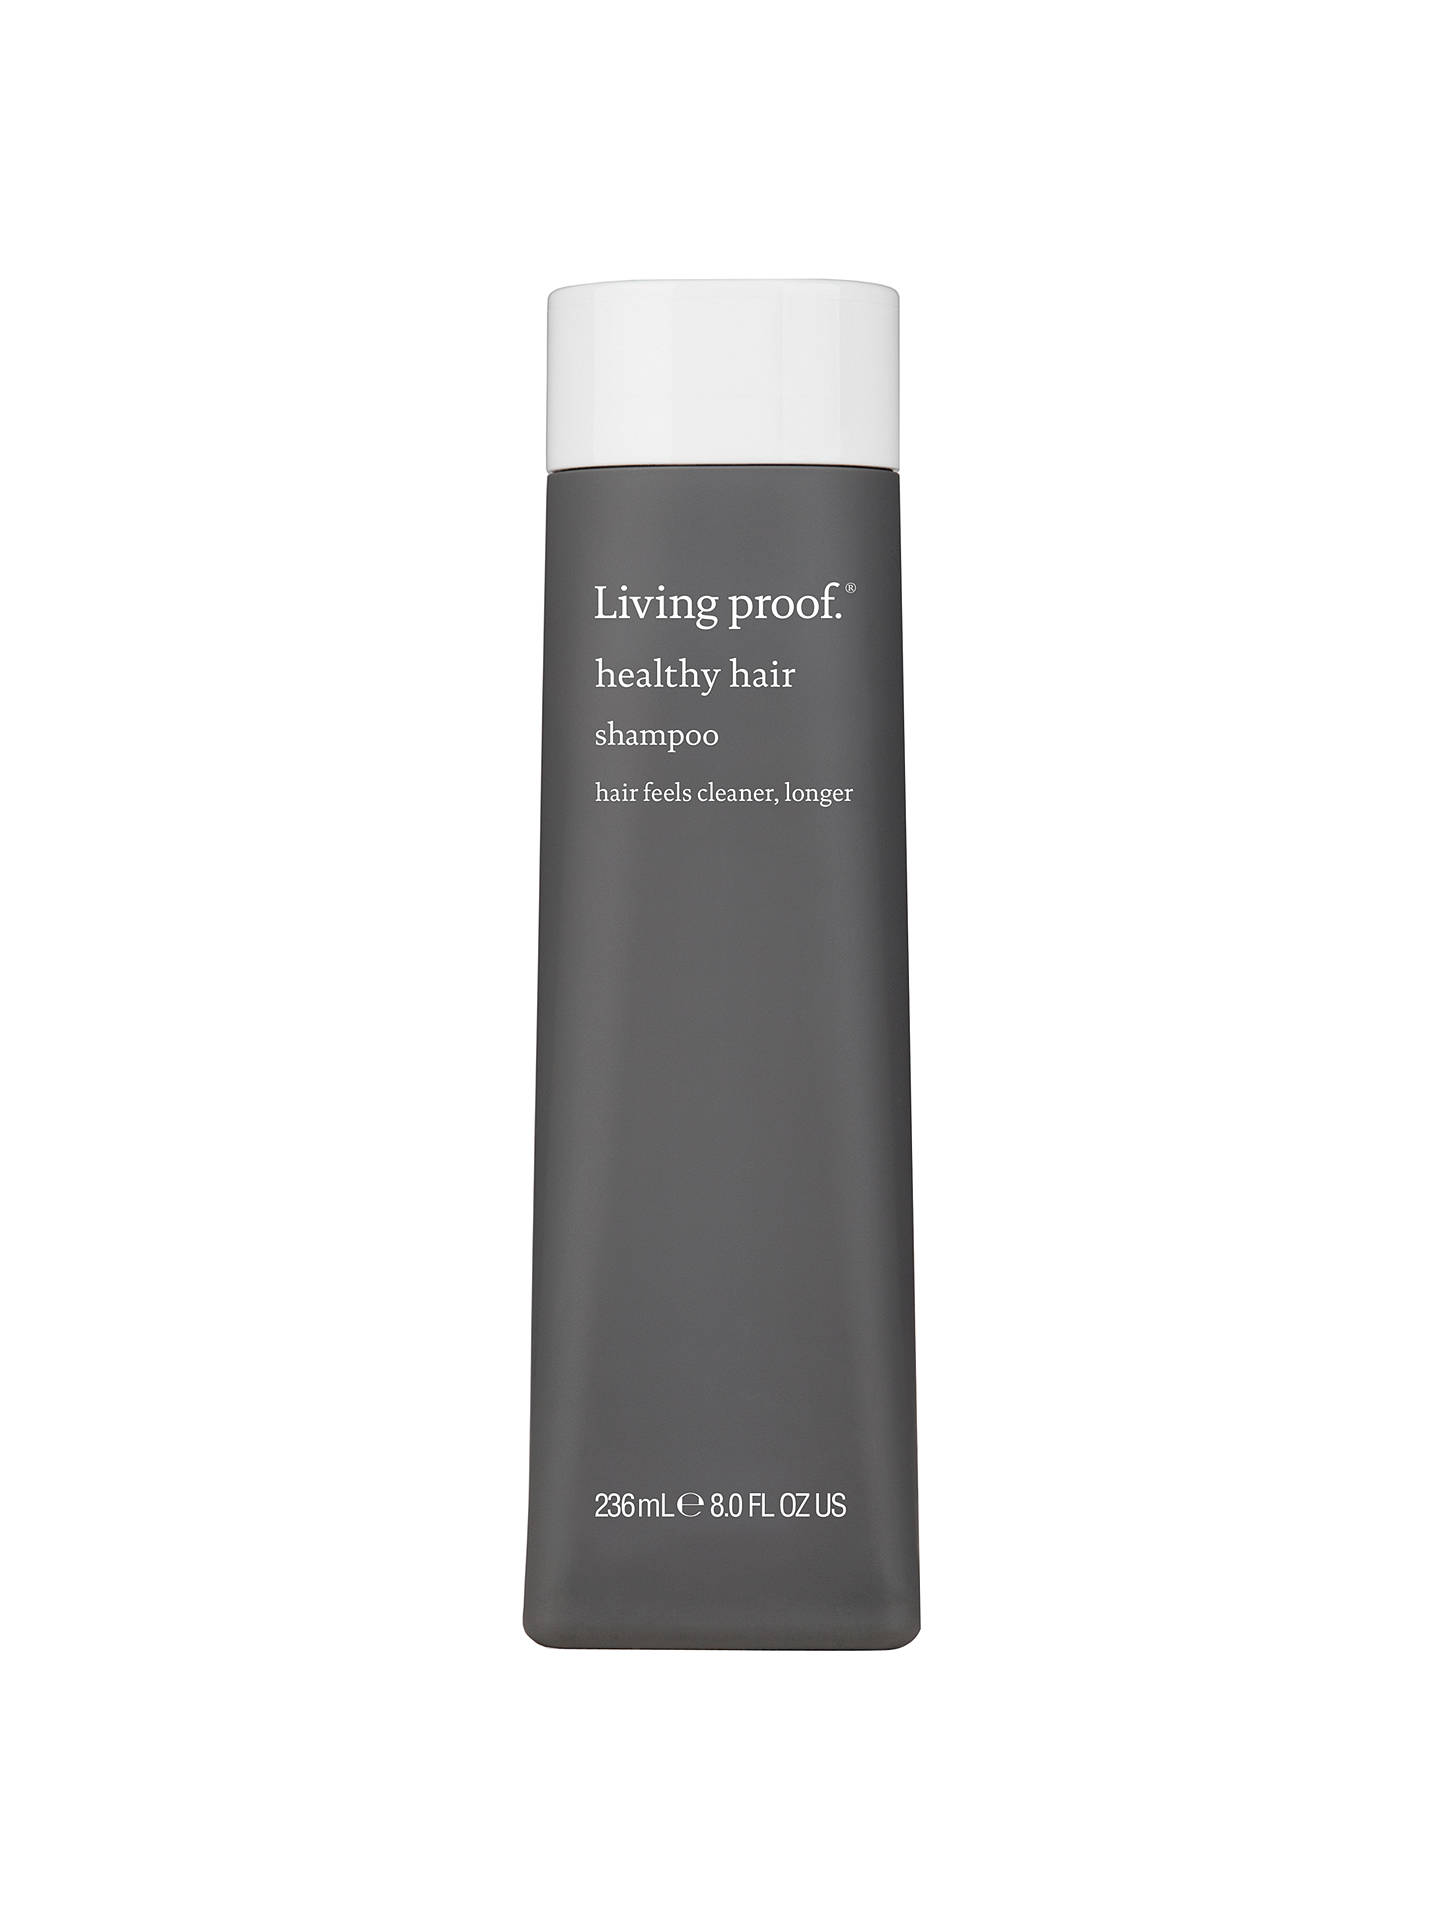 Living Proof Healthy Hair Shampoo 236ml At John Lewis